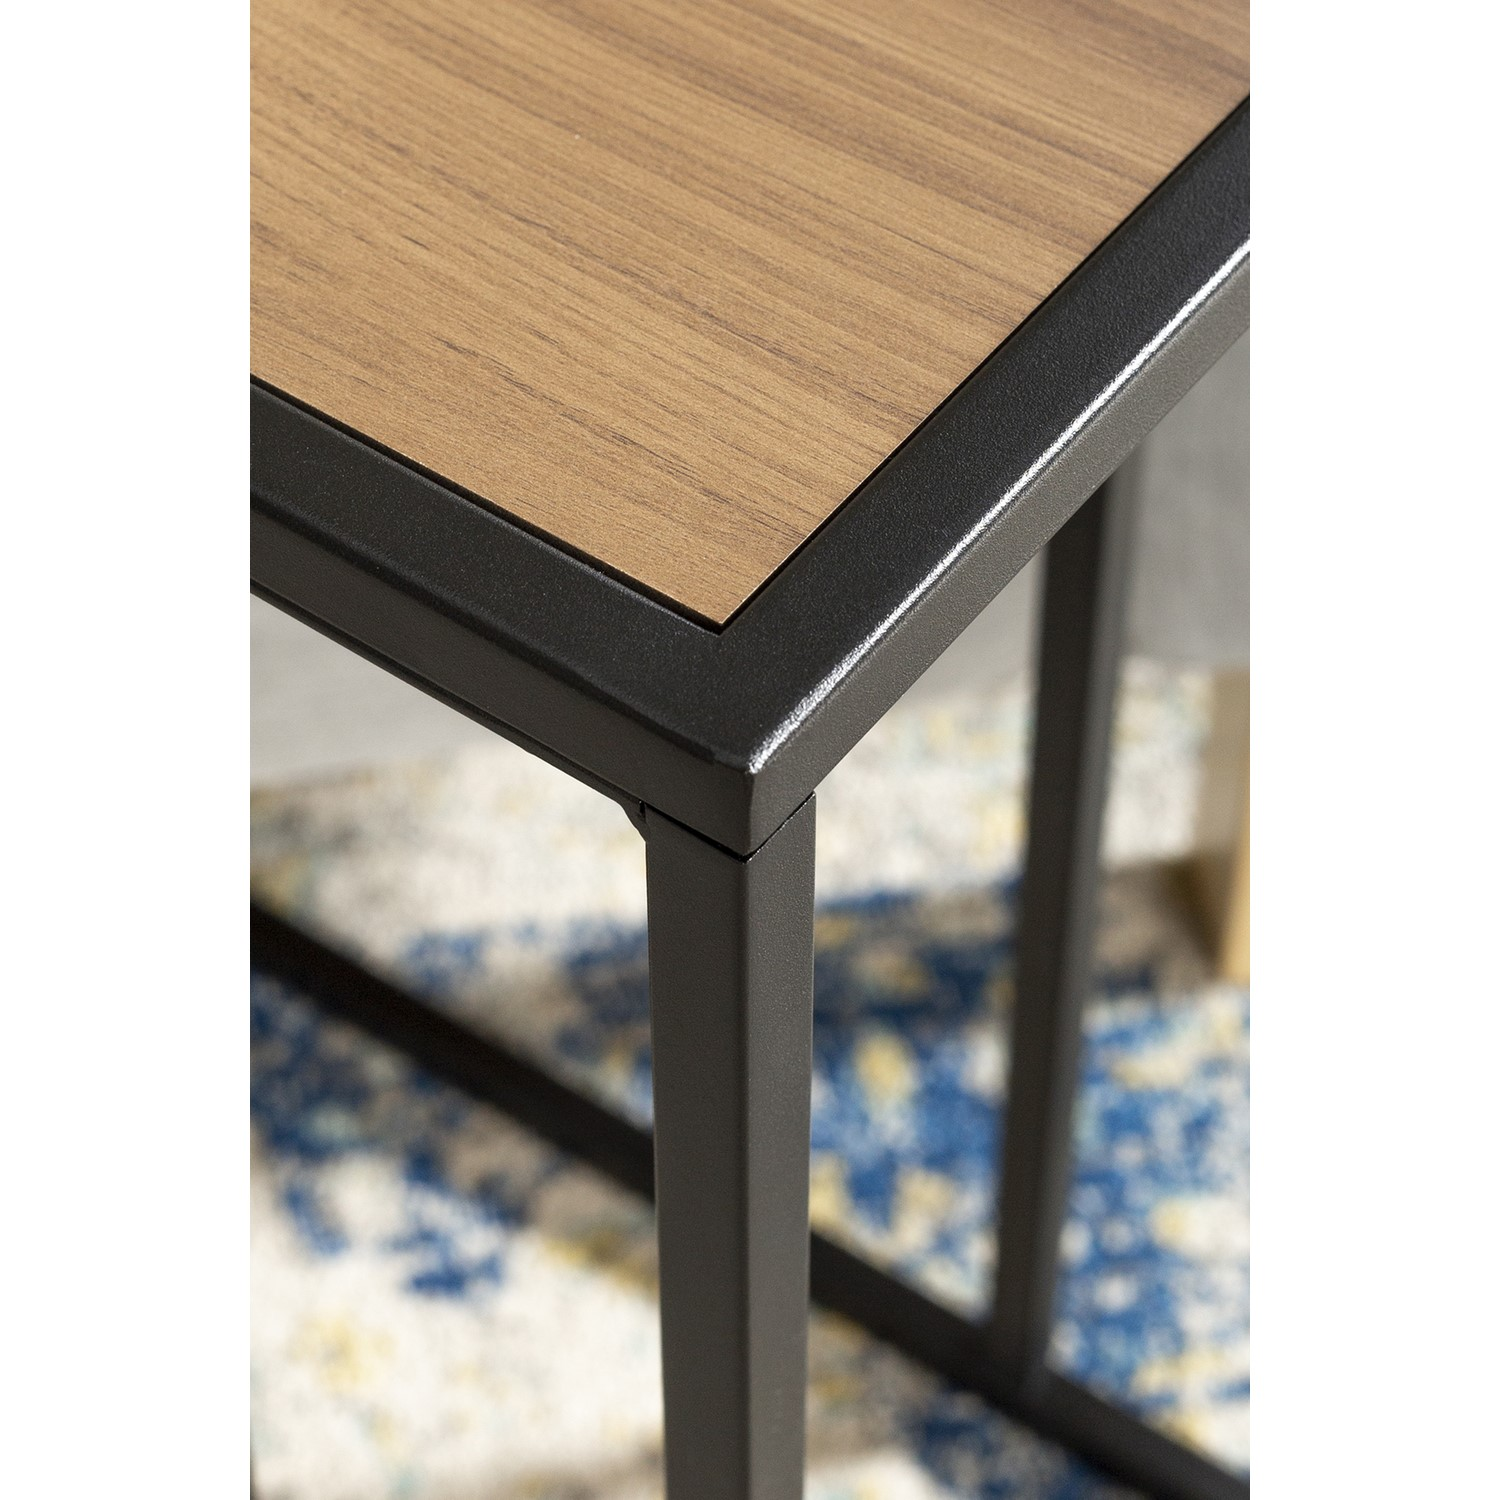 foster wooden side table with light wood top metal legs